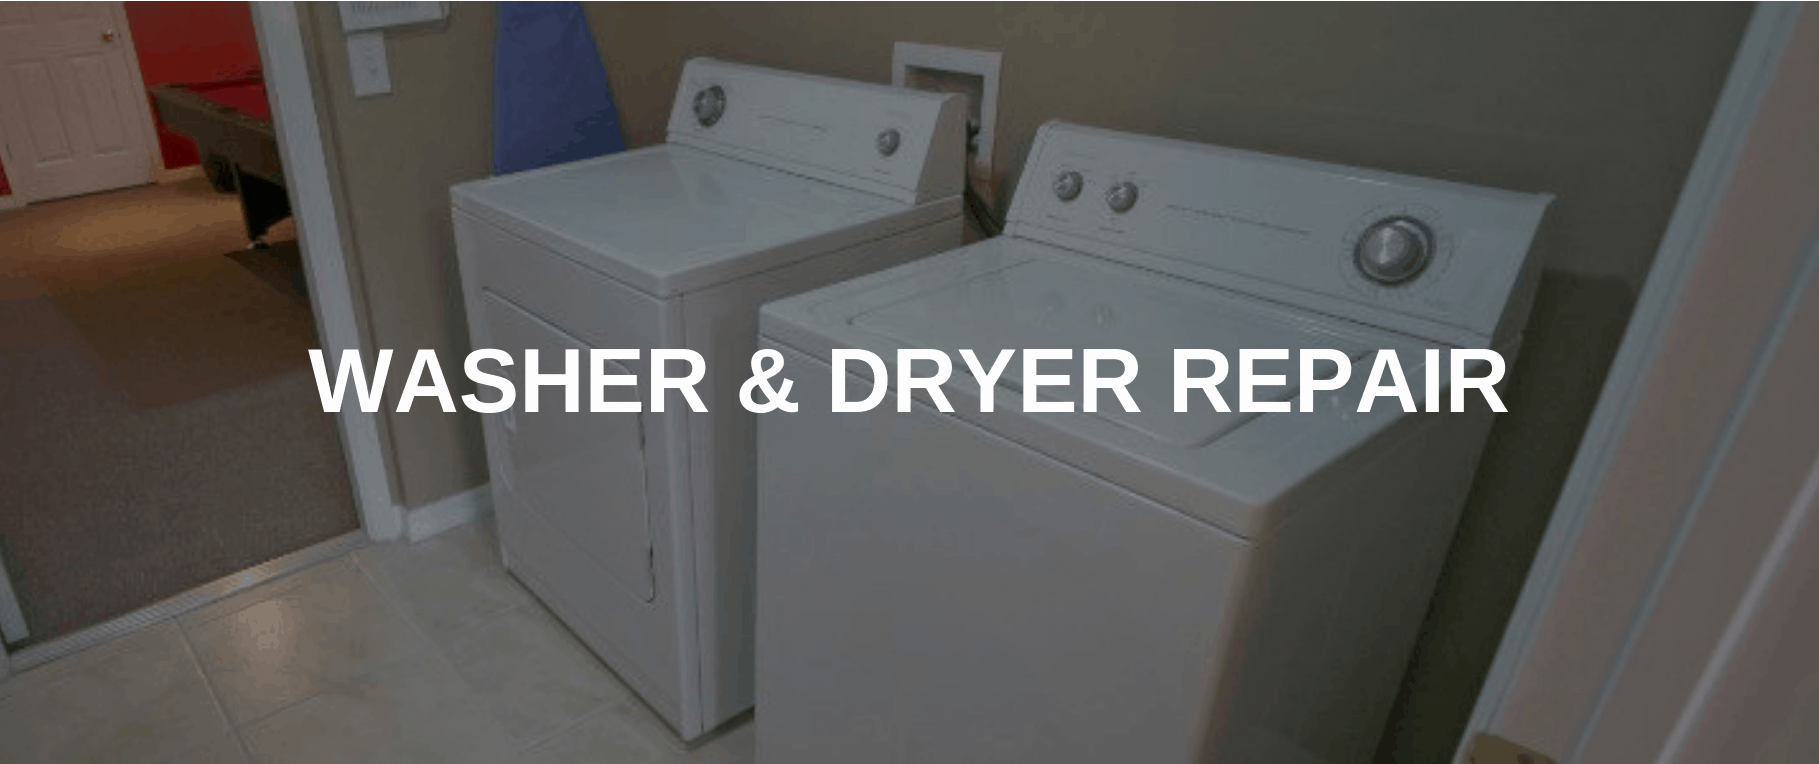 washing machine repair boulder